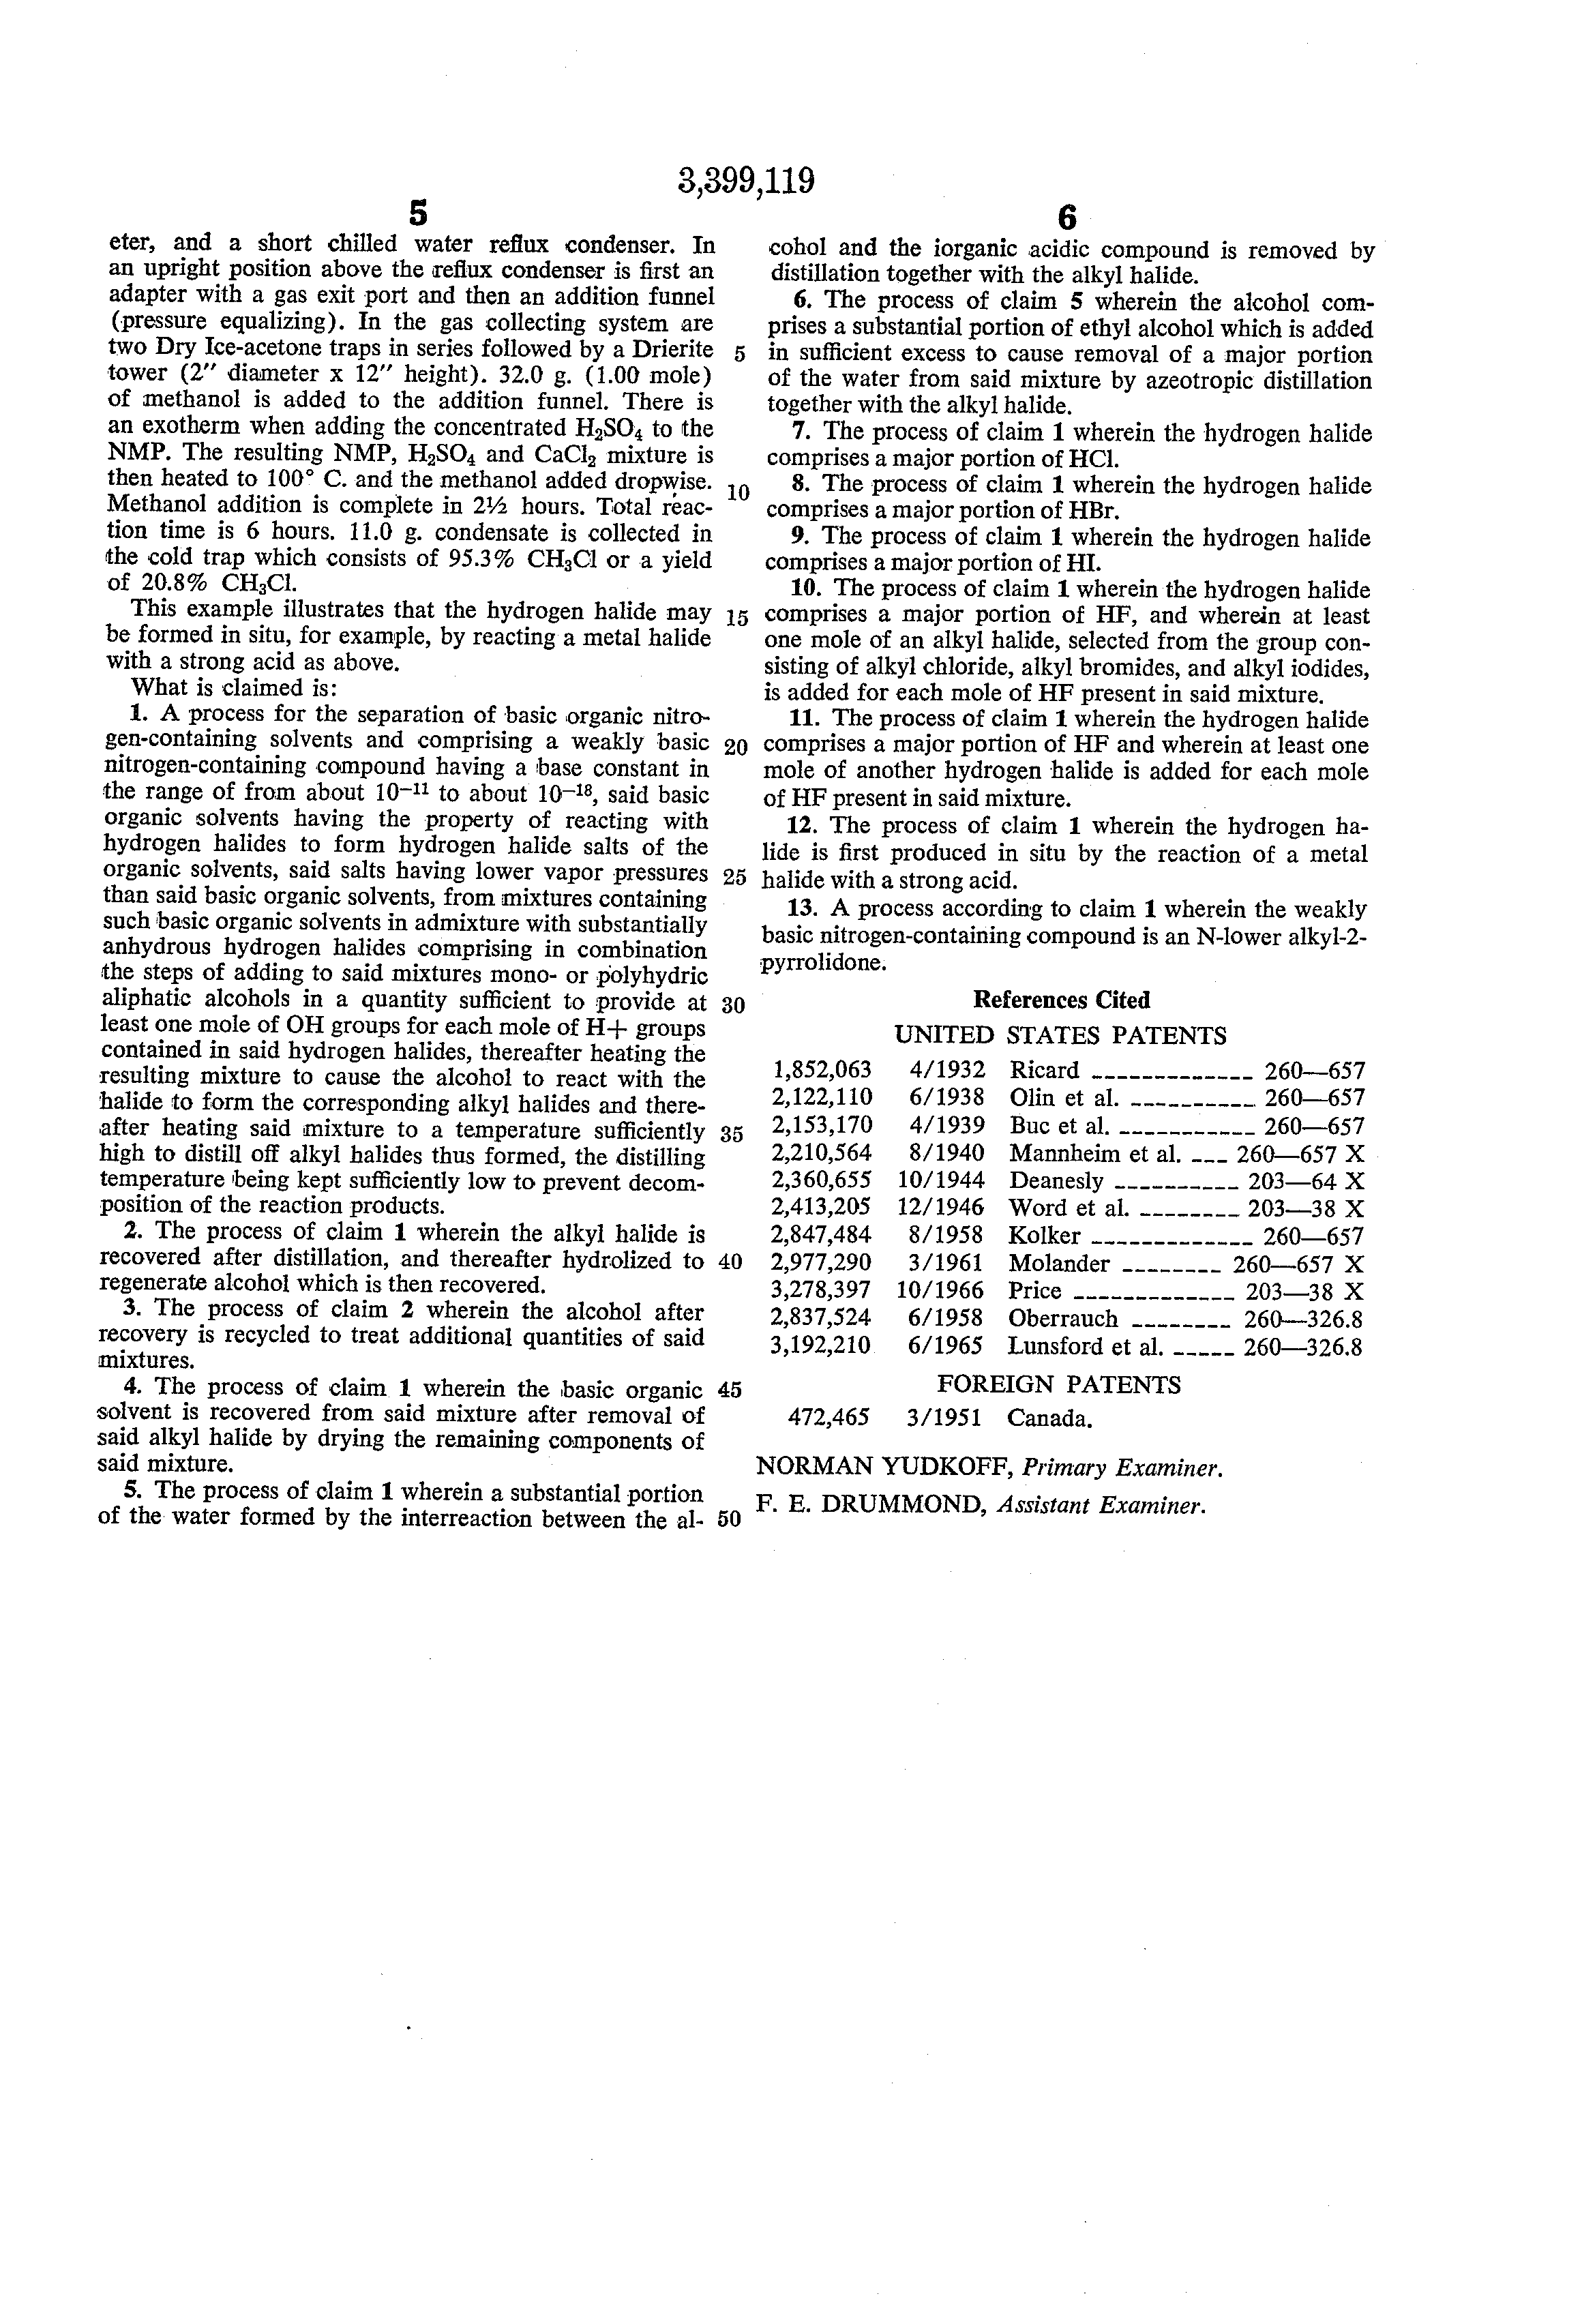 Patent US3399119 - Reaction and distillation process for nu